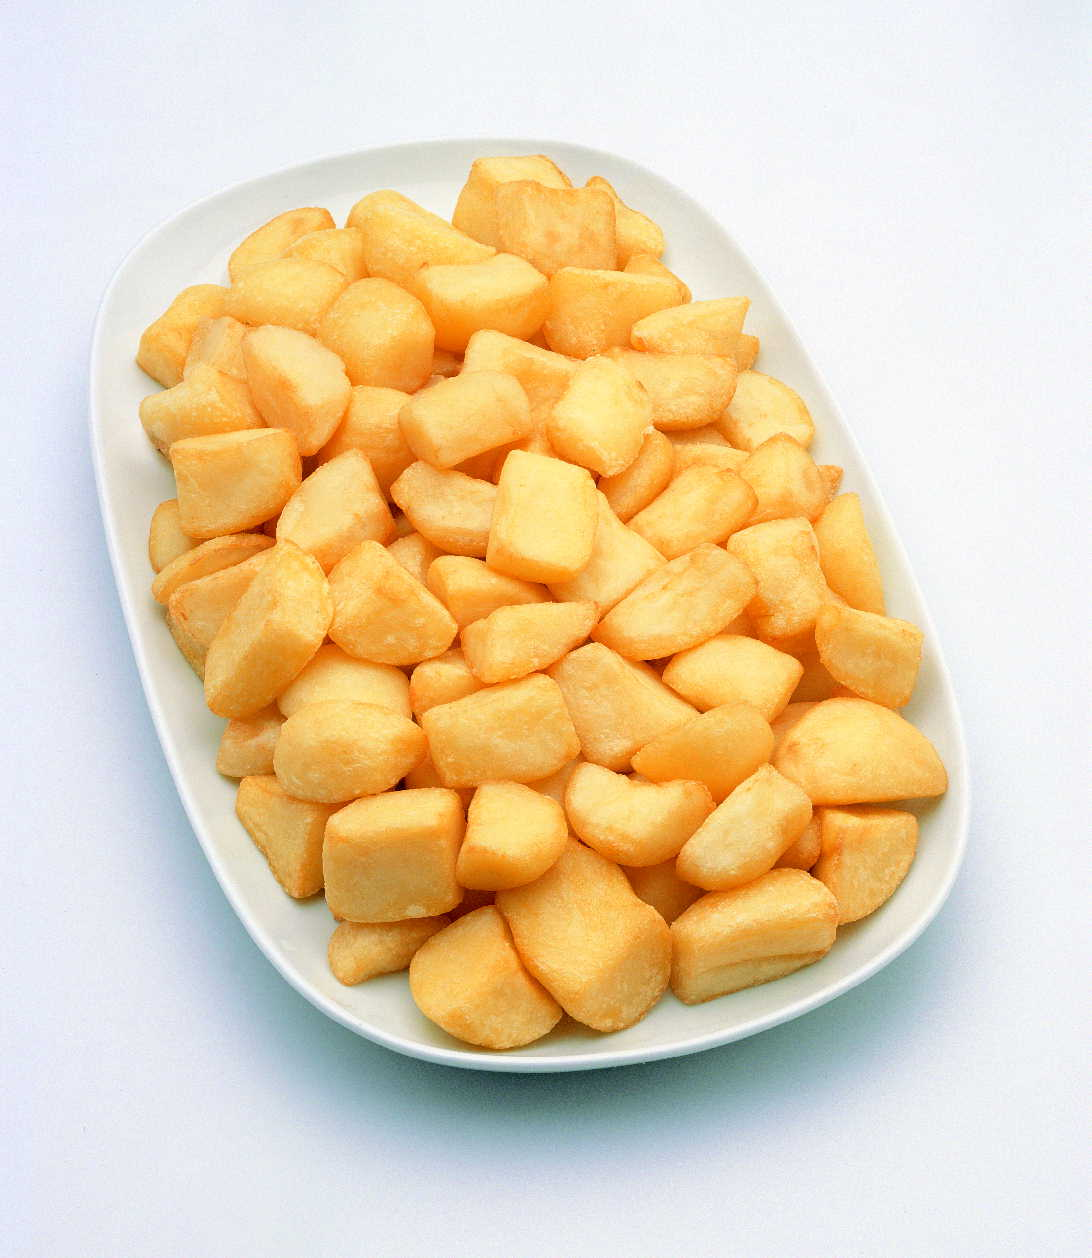 FROZEN FRENCH FRIES - OTHER Bravas Potato - Frying 4-5 mn